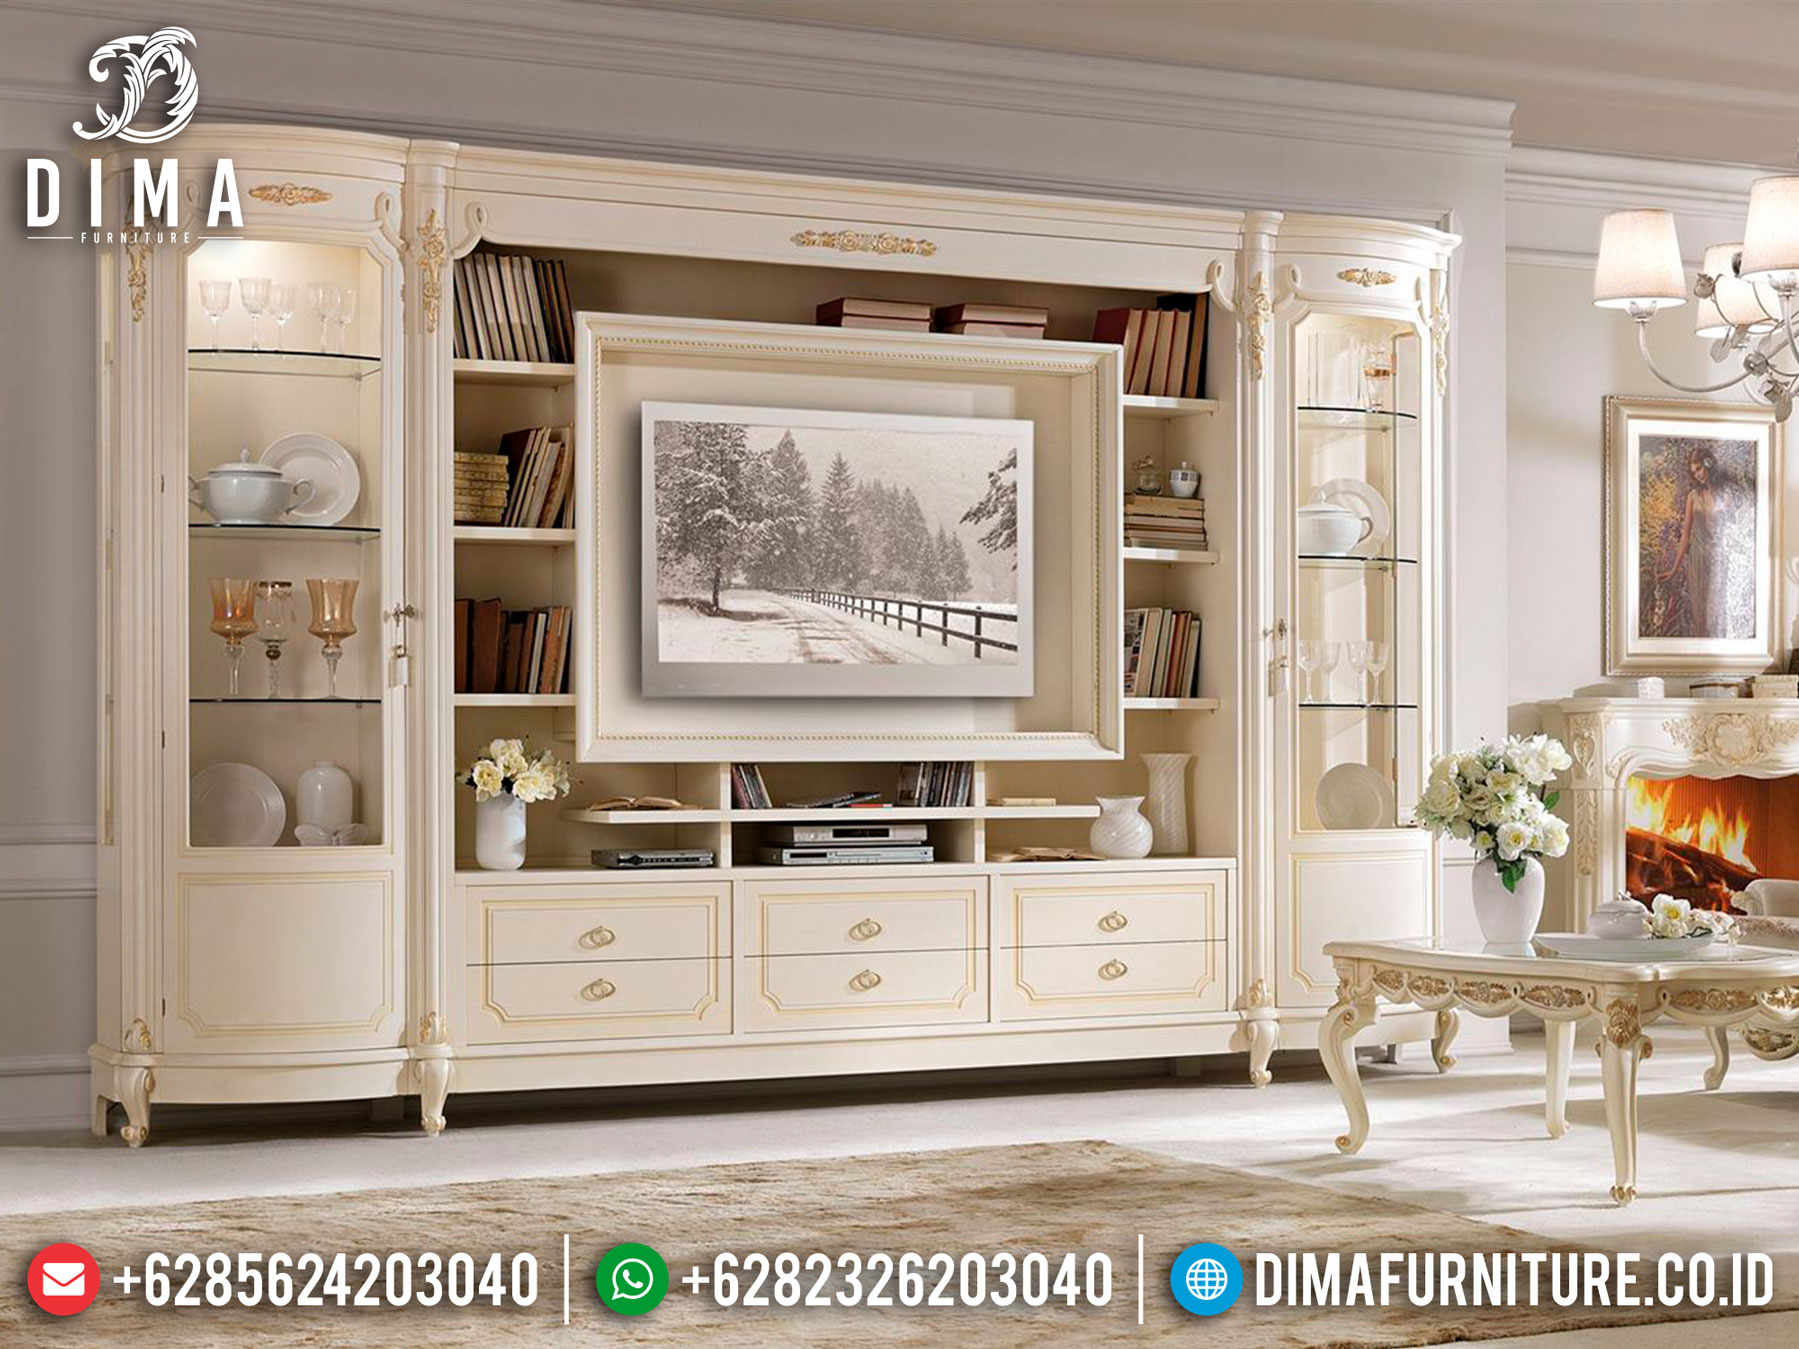 Great Furniture Bufet TV Jepara Luxury Carving Living Room Design Imperial TTJ-1035